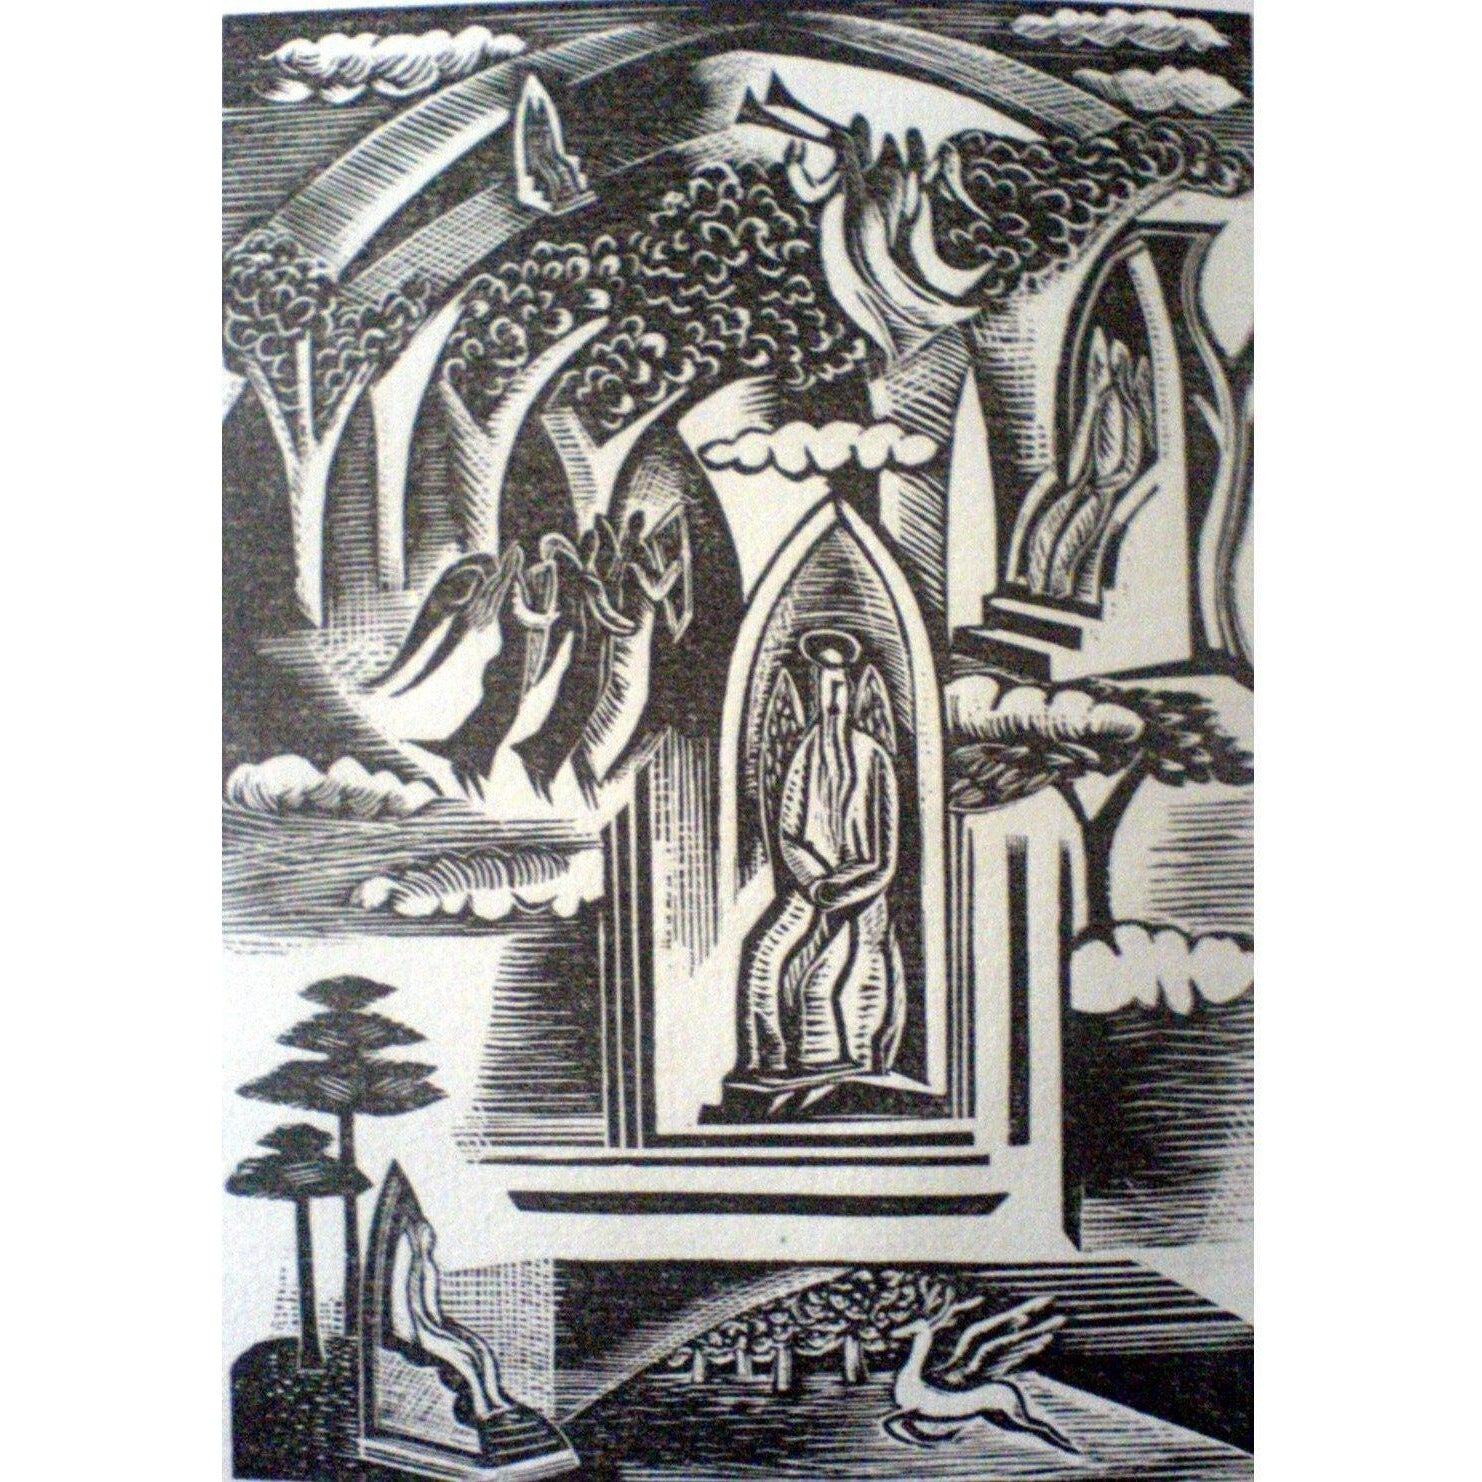 Paul Nash Ltd Ed Woodcut Print - Heaven